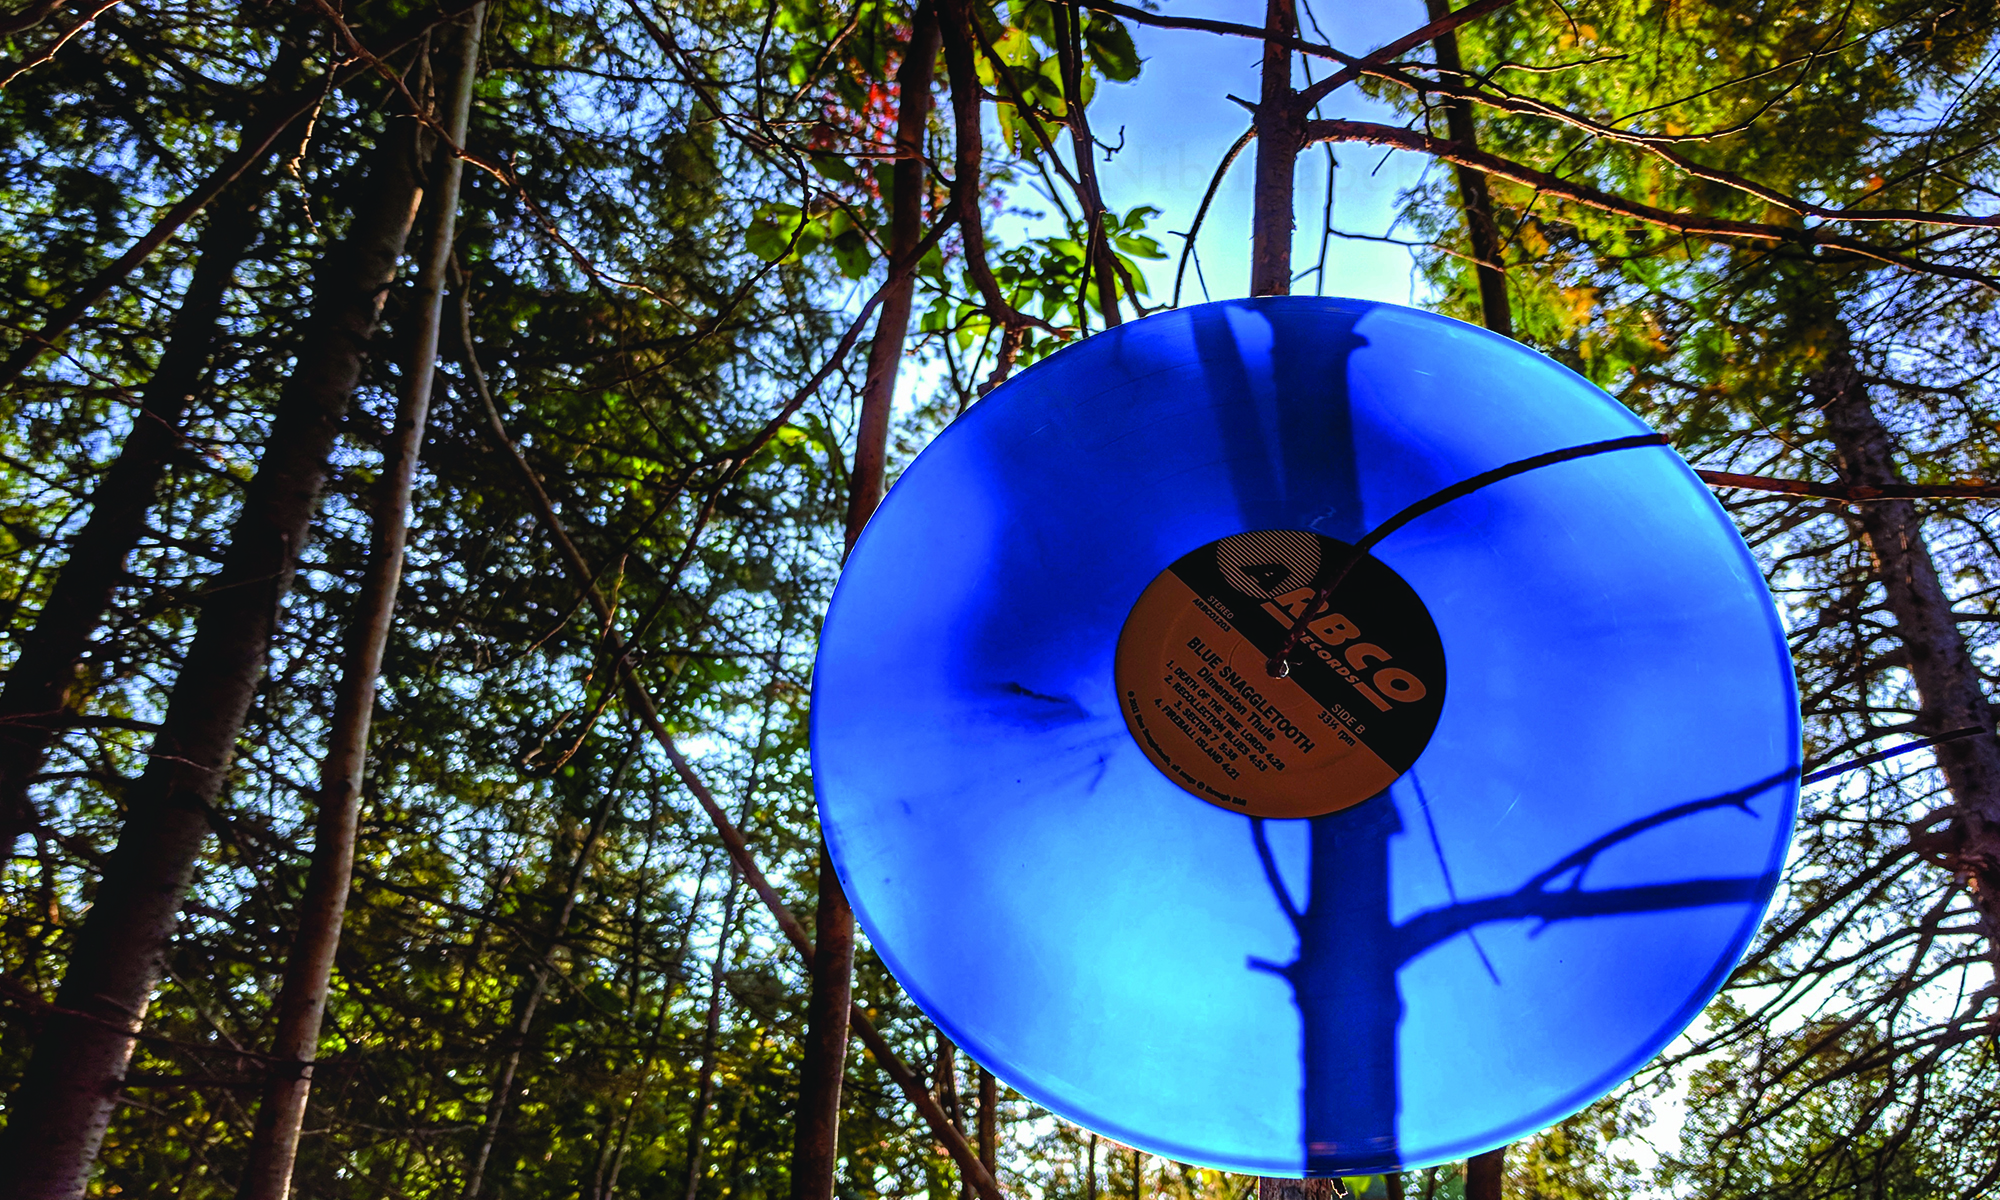 Blue Vinyl LP Review Photo In Tree